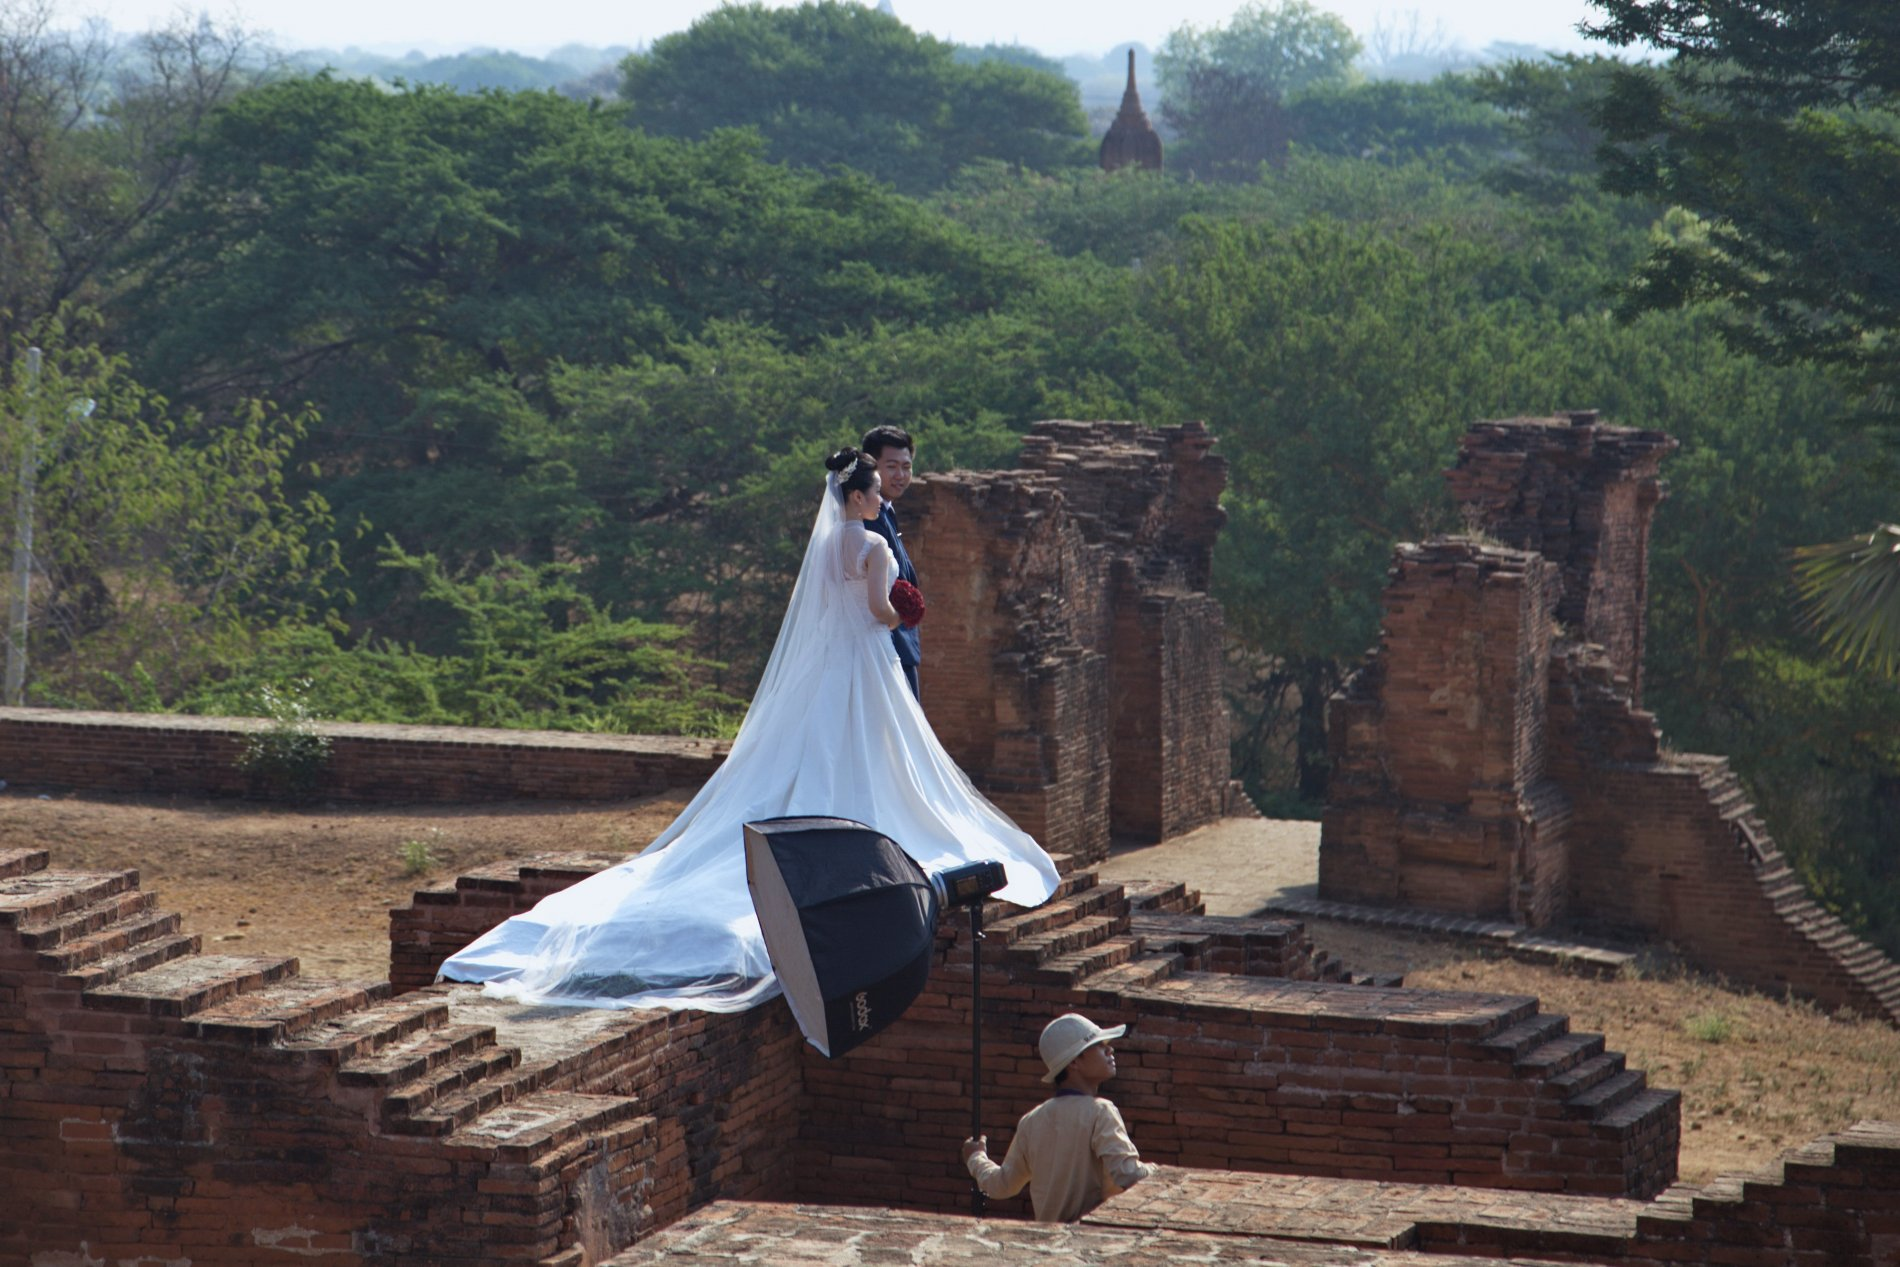 Bagan_194.jpg-commment